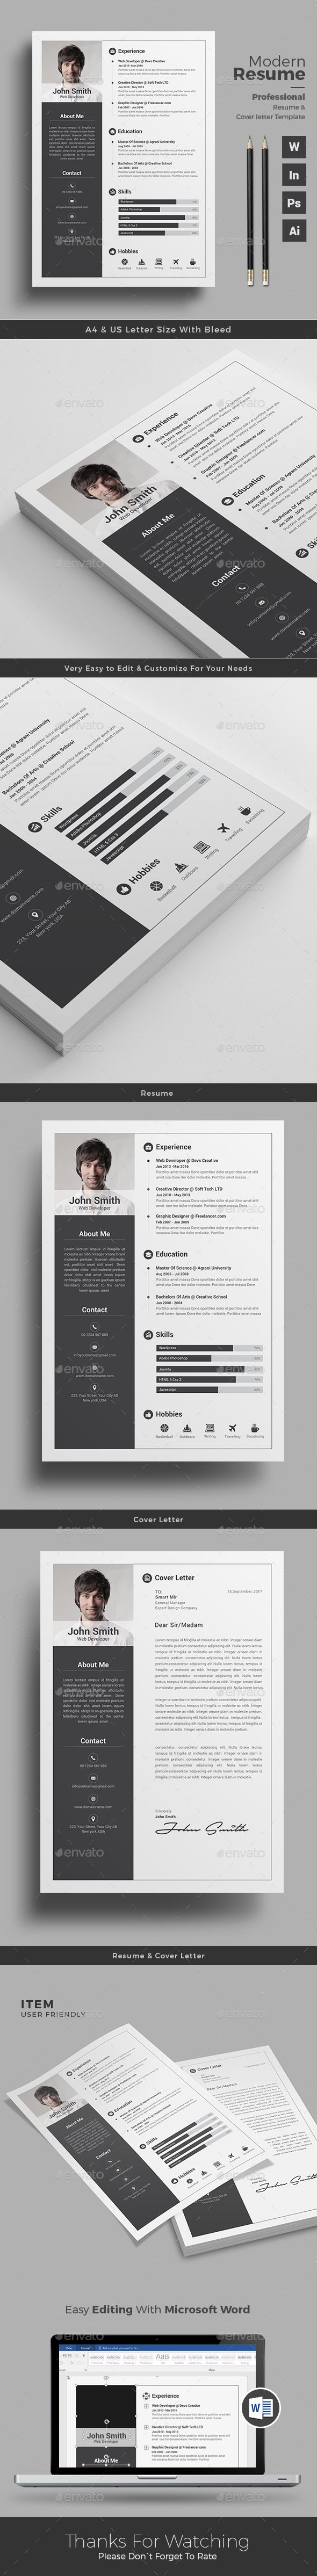 Manual Testing Resume Word  Best Awesome Cv Template Images On Pinterest Resume Objective Accounting Excel with Power Words For Resume Pdf Infographic Resume Cv Templateresume  Office Administrator Resume Excel